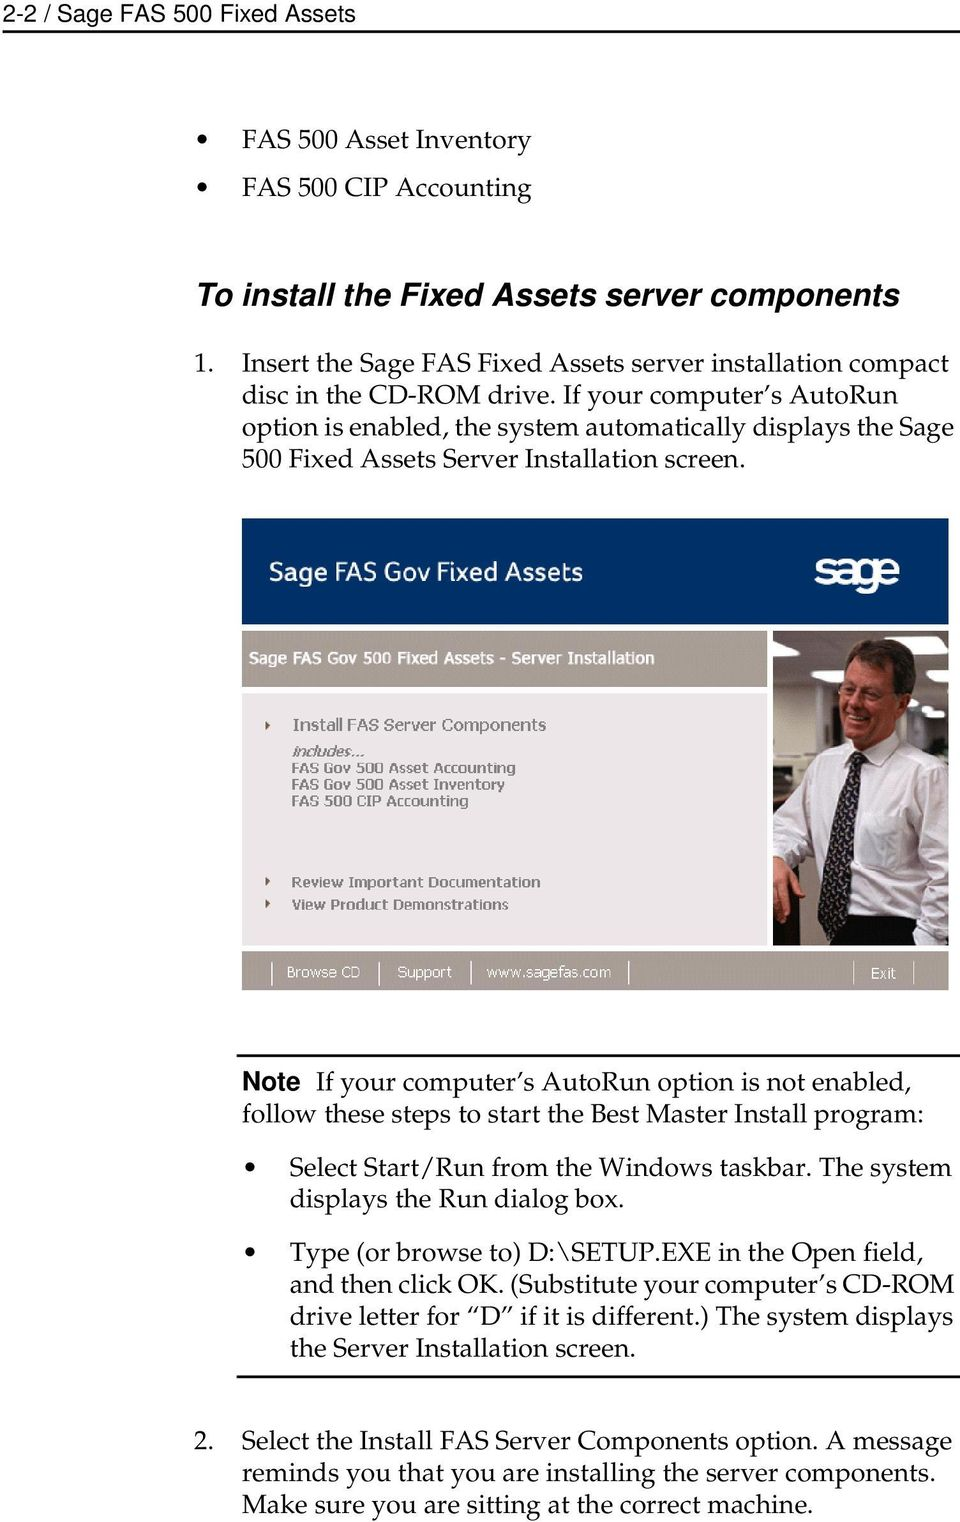 If your computer s AutoRun option is enabled, the system automatically displays the Sage 500 Fixed Assets Server Installation screen.